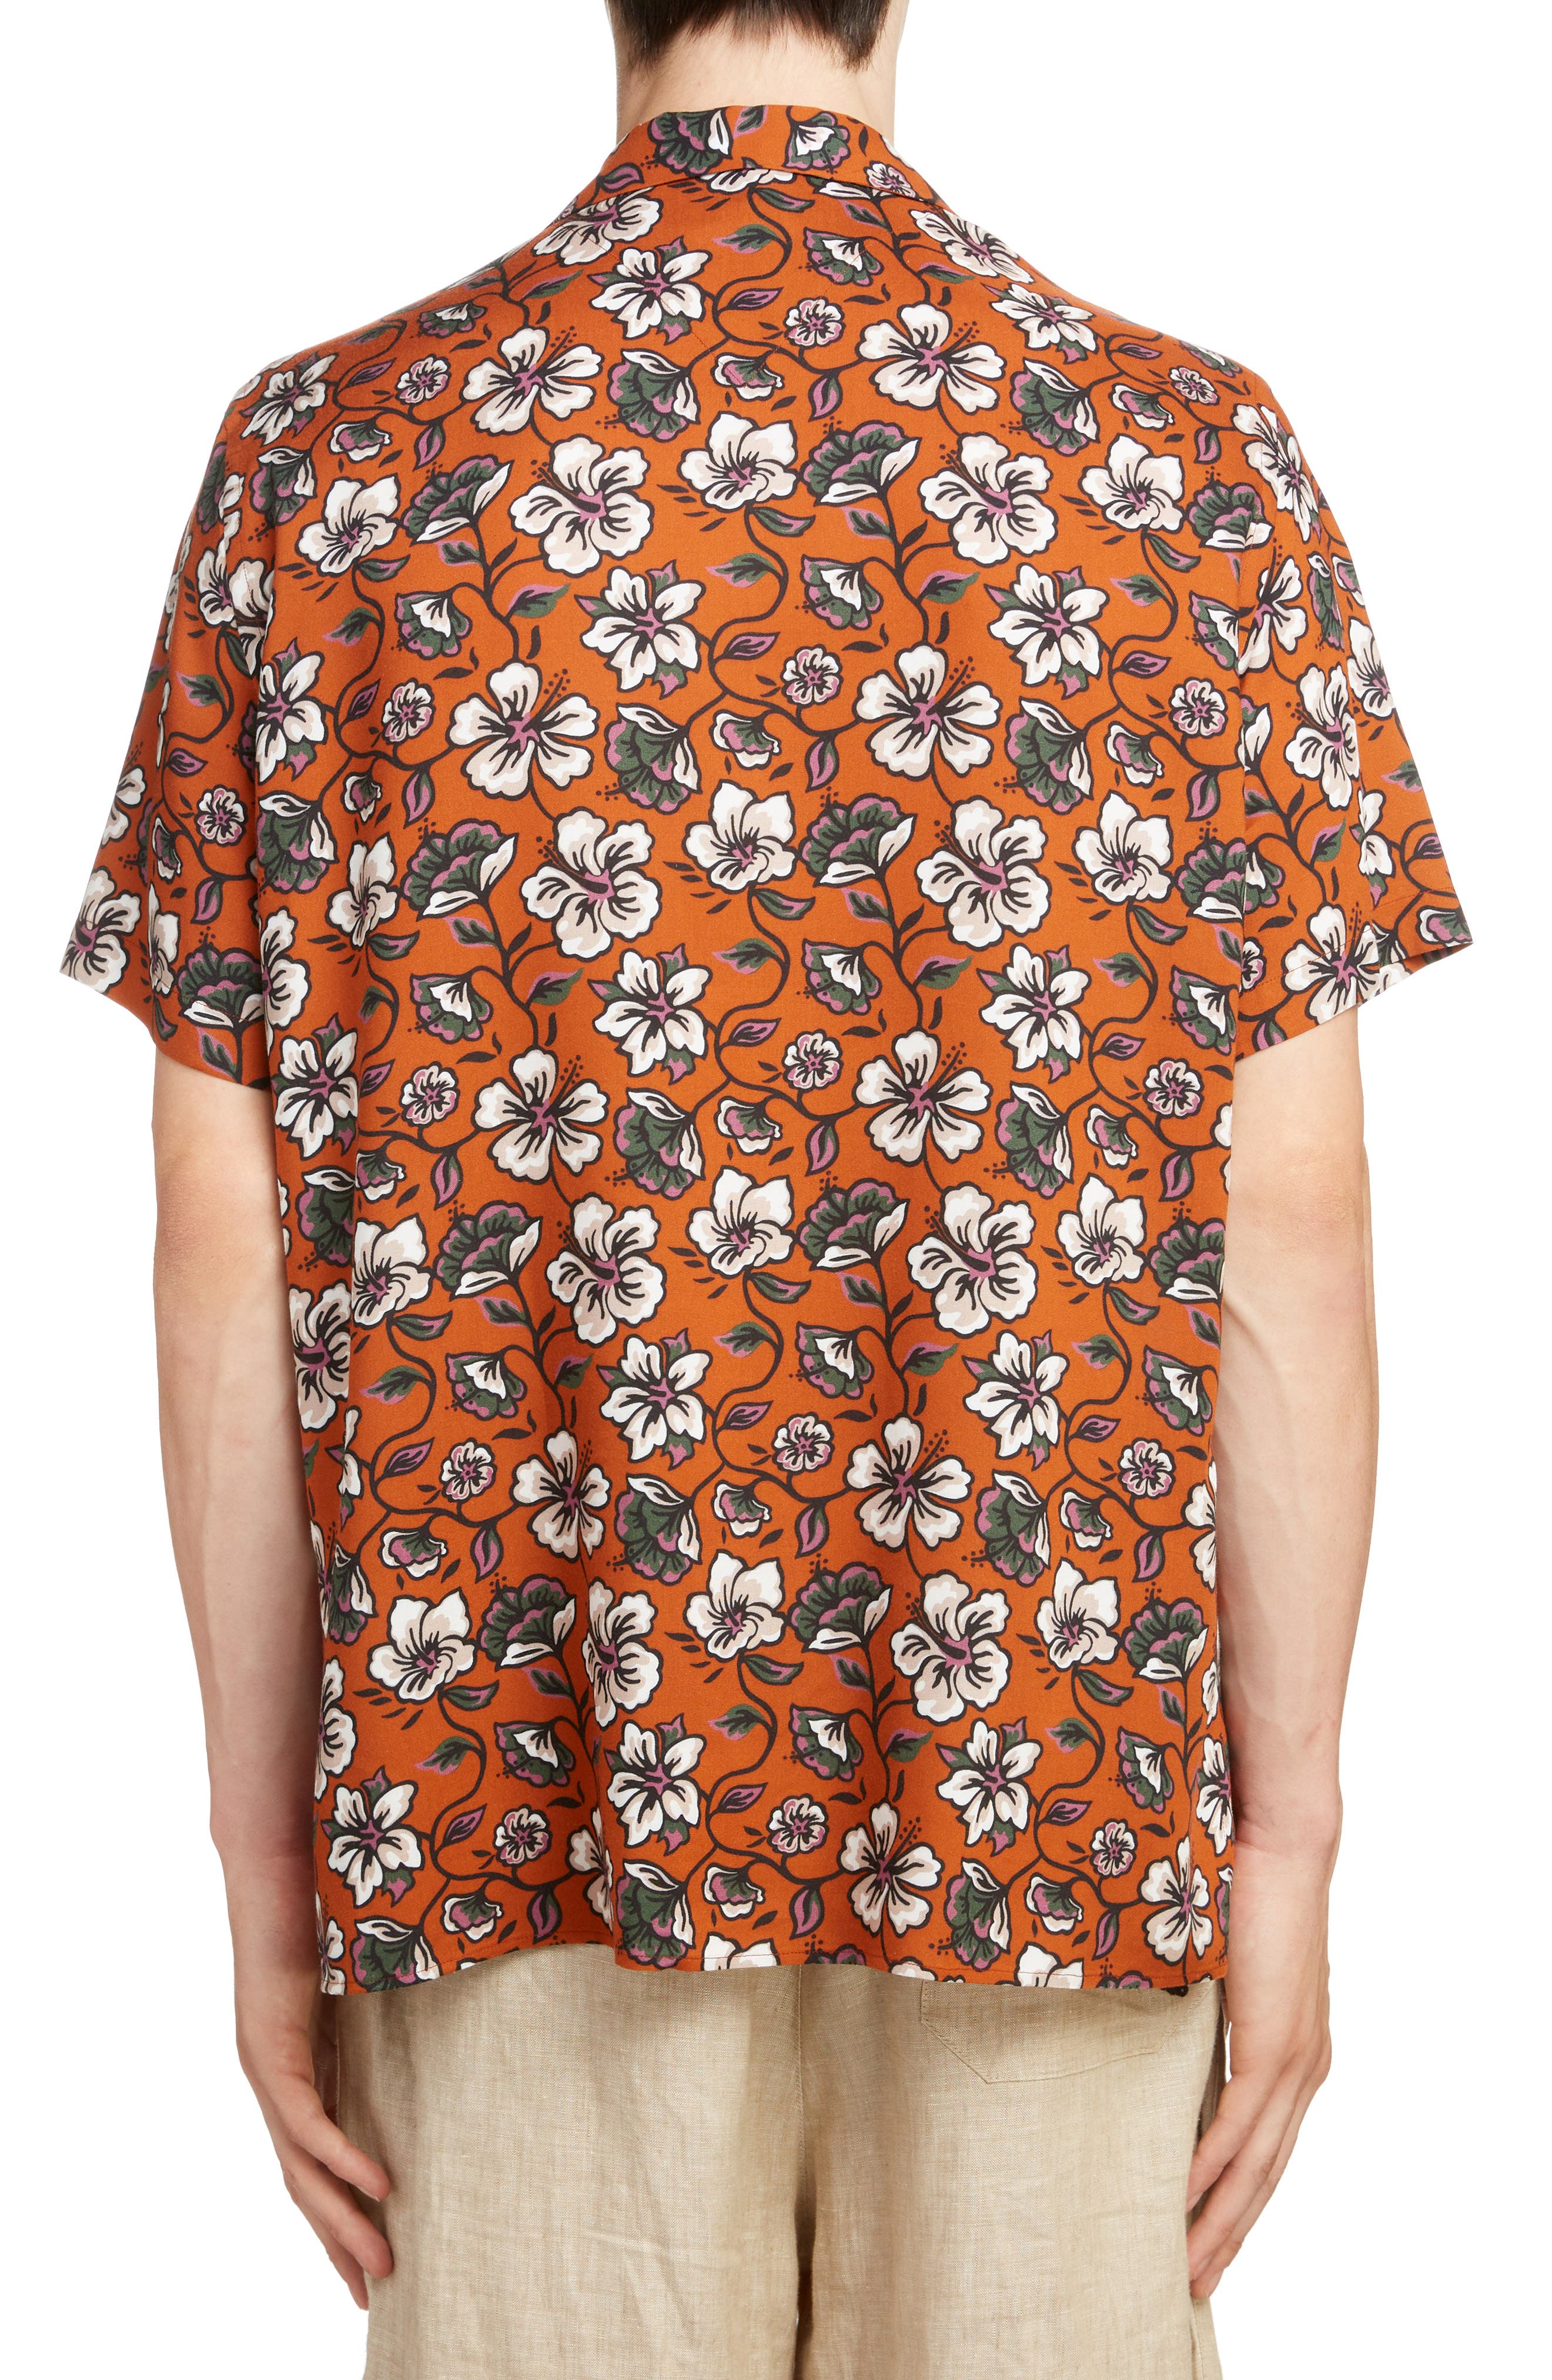 LOEWE, Floral Print Camp Shirt, Alternate thumbnail 3, color, 2103-WHITE/ BROWN